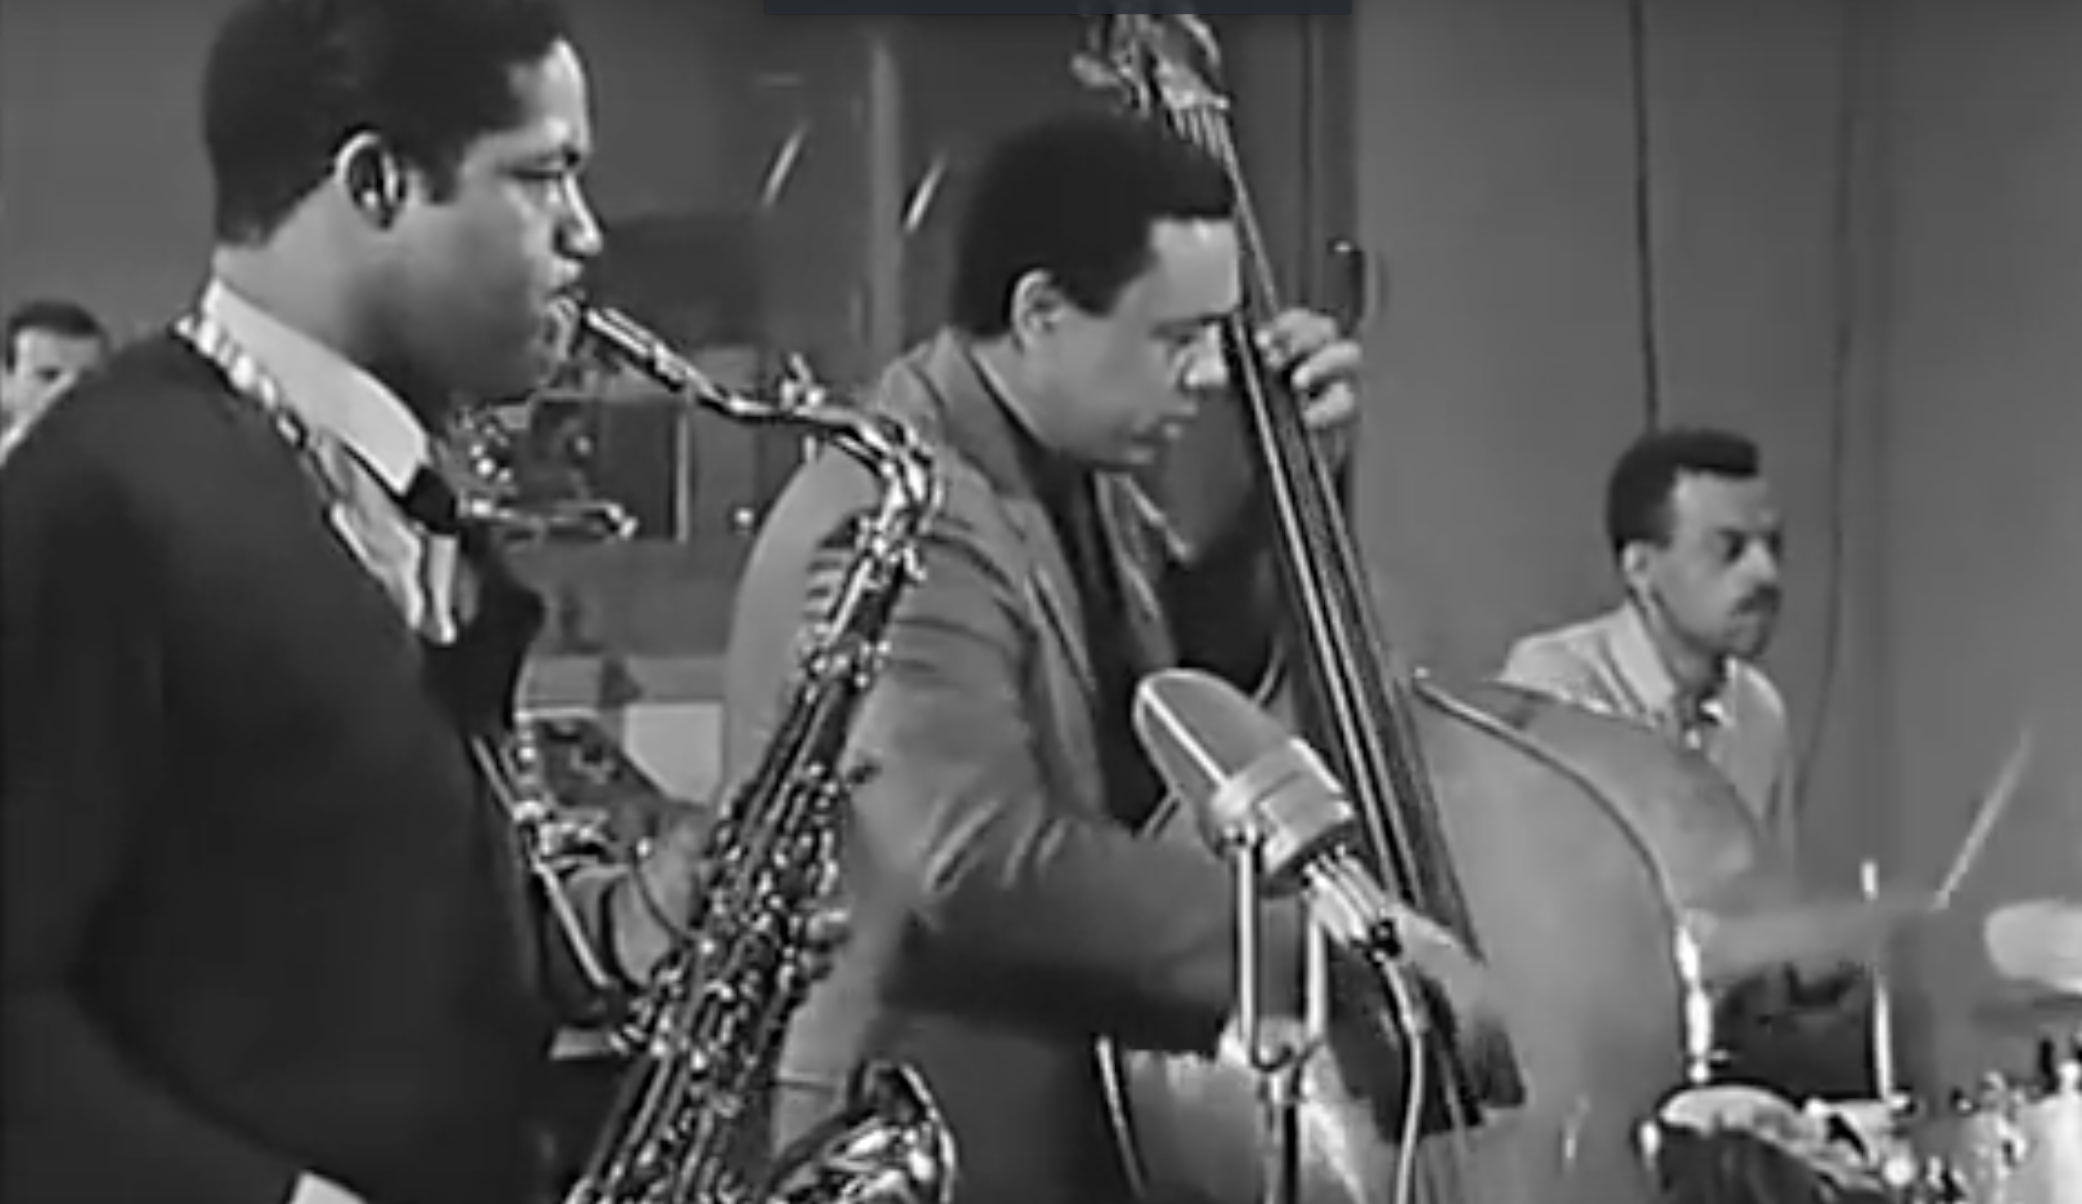 Mingus Ah Um (1959) and An Ethics of Care in Jazz